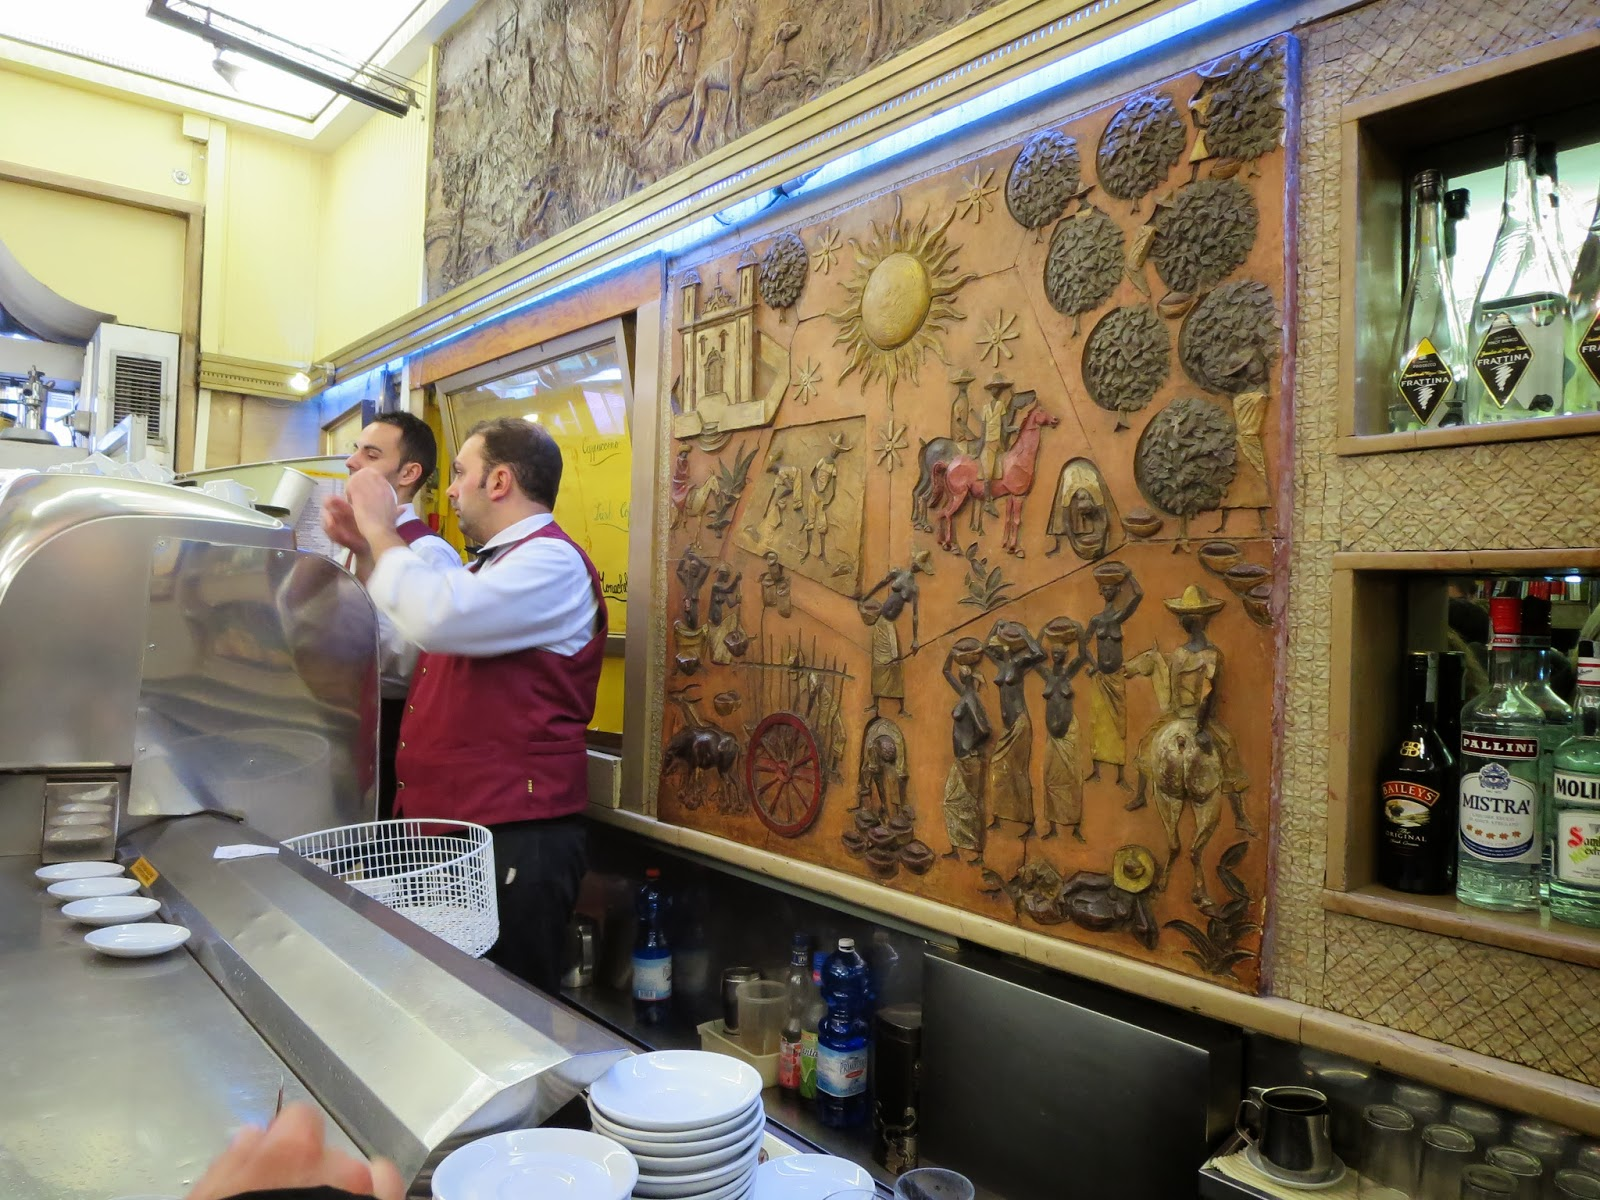 Behind the counter at Sant'Eustachio Il Caffè in Rome, Italy